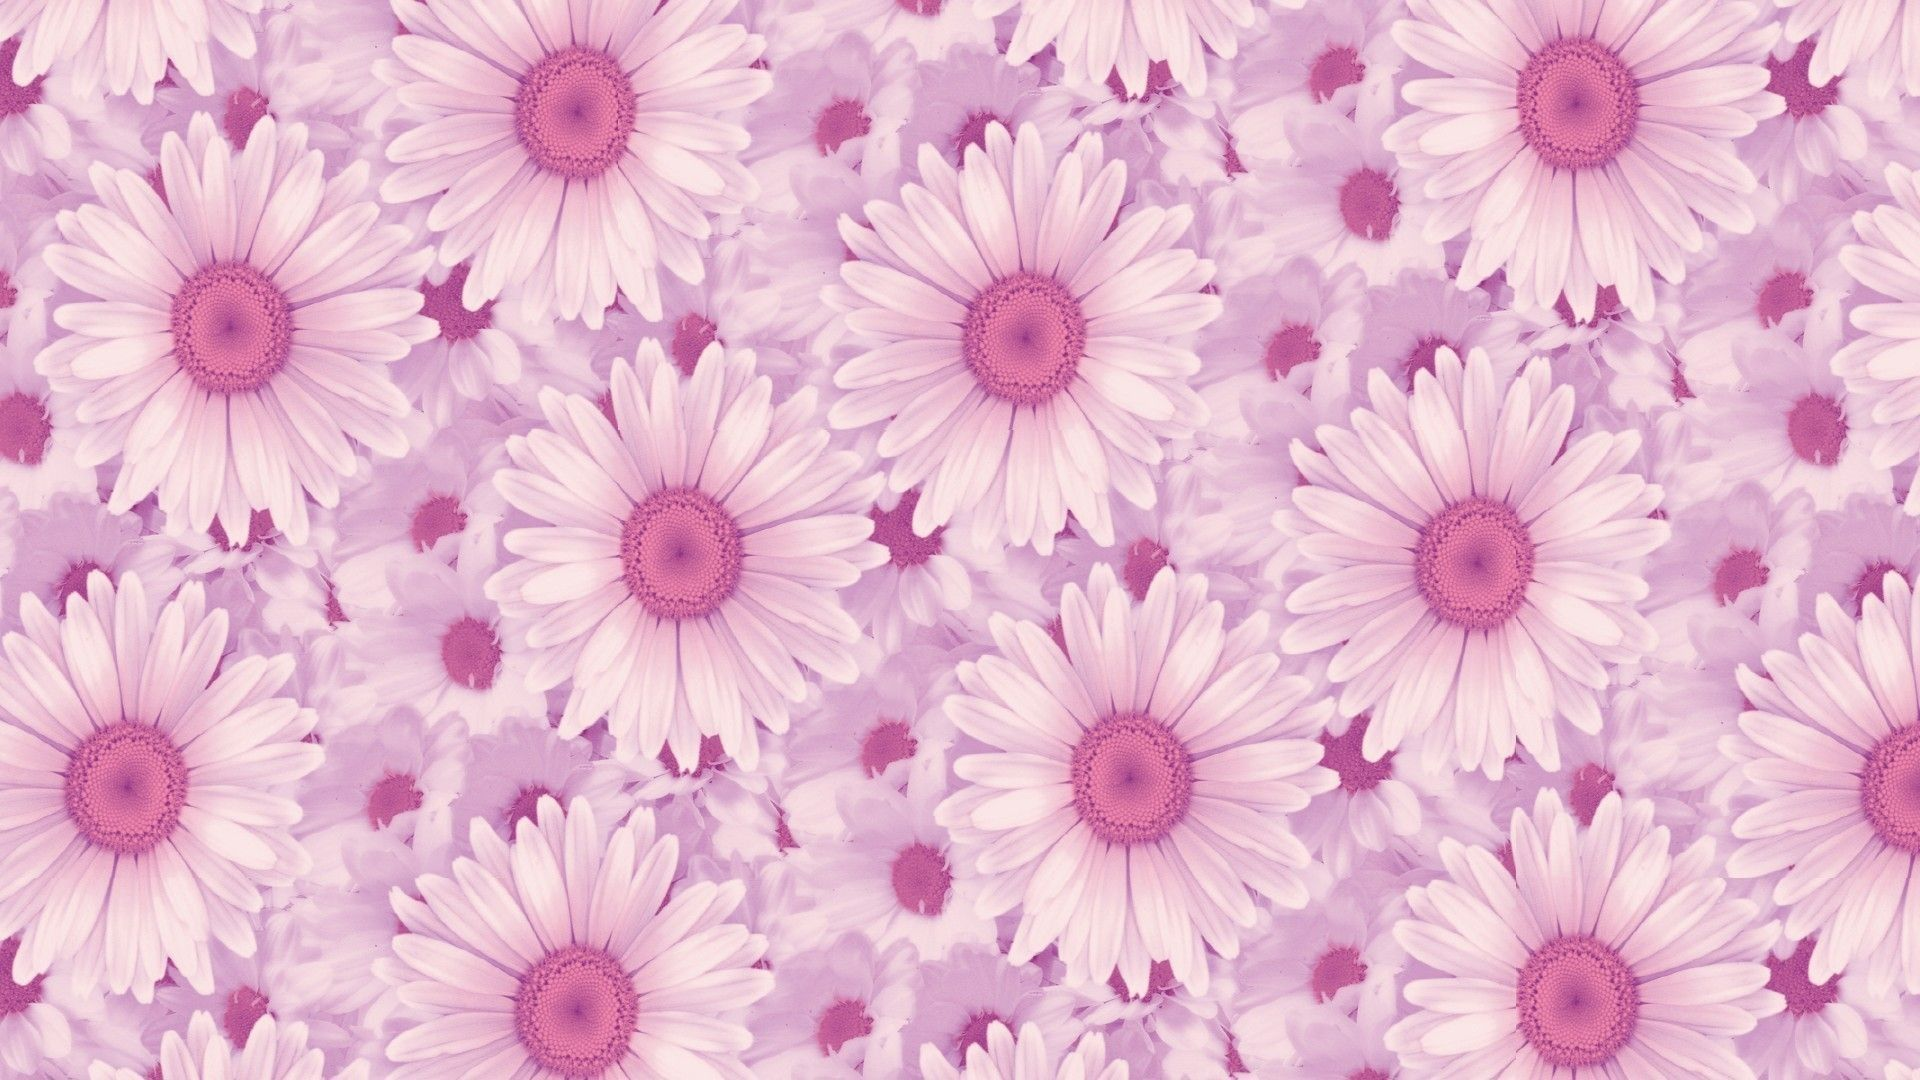 See more ideas about flower wallpaper, flower aesthetic, flowers photography. 73 Wallpaper Pink Aesthetic Tumblr Quotes | Aesthetic ...